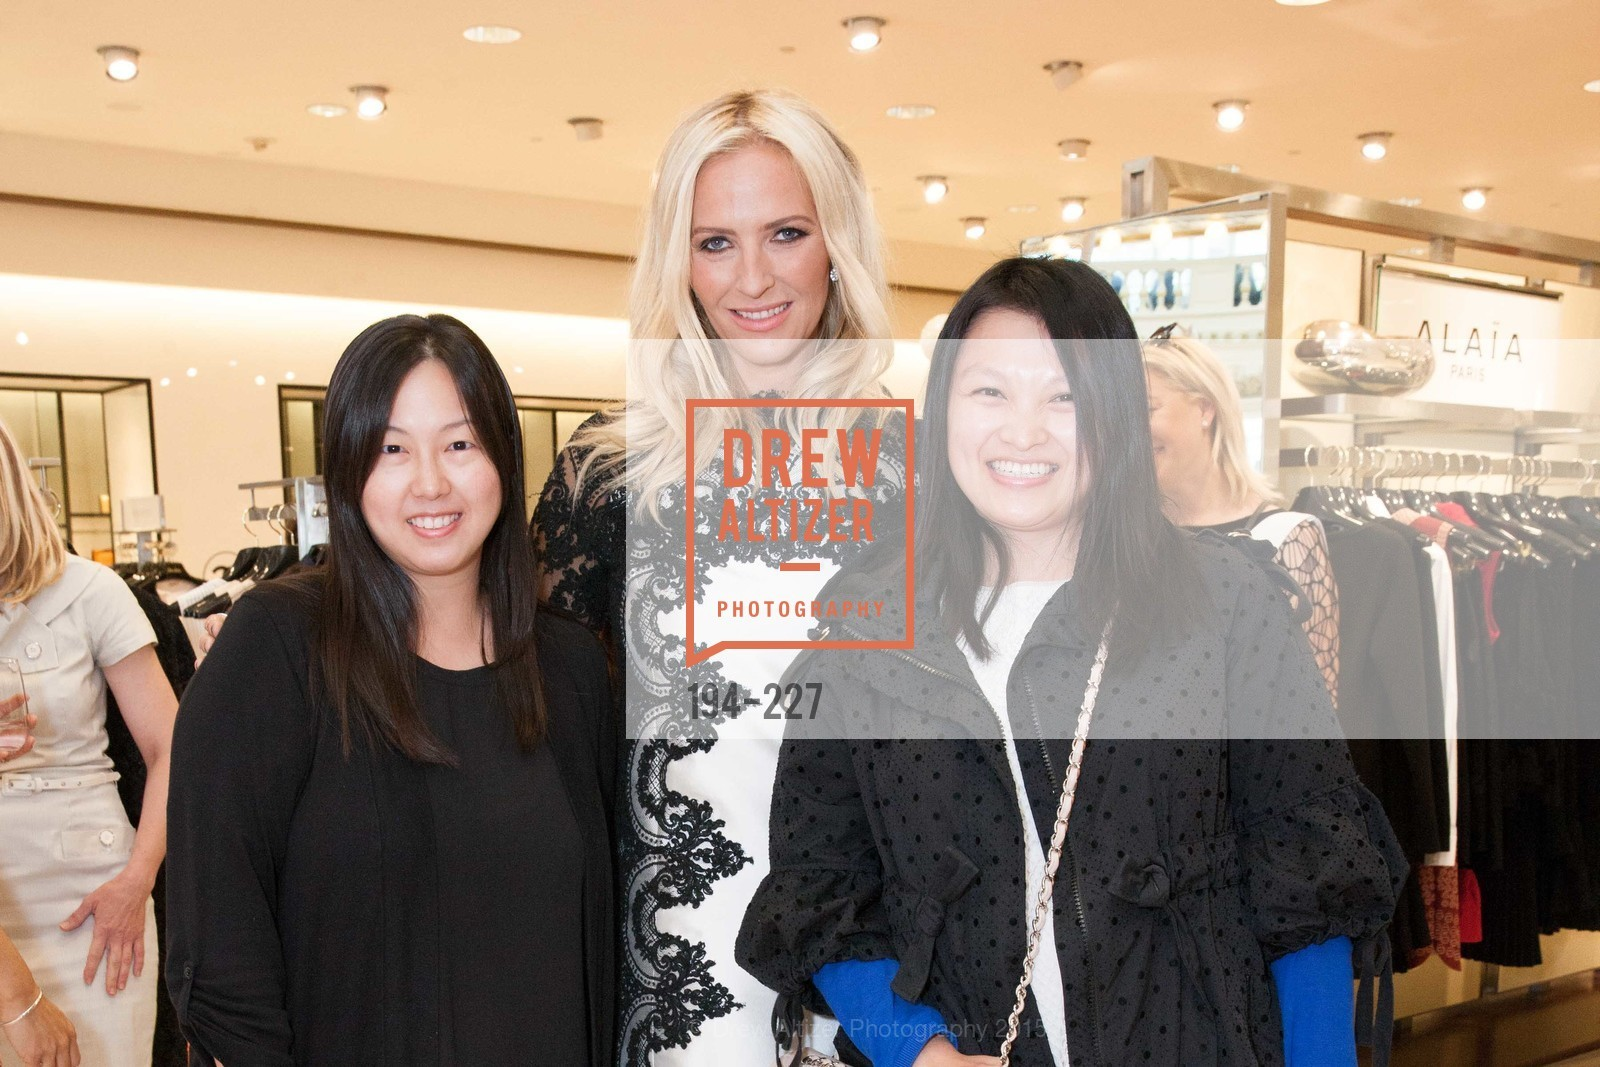 Tammy Hsiao, Keren Craig, Yawen Chin, Keren Craig Personal Appearance for Marchesa Fall Trunk Show, Neiman Marcus, May 7th, 2015,Drew Altizer, Drew Altizer Photography, full-service agency, private events, San Francisco photographer, photographer california